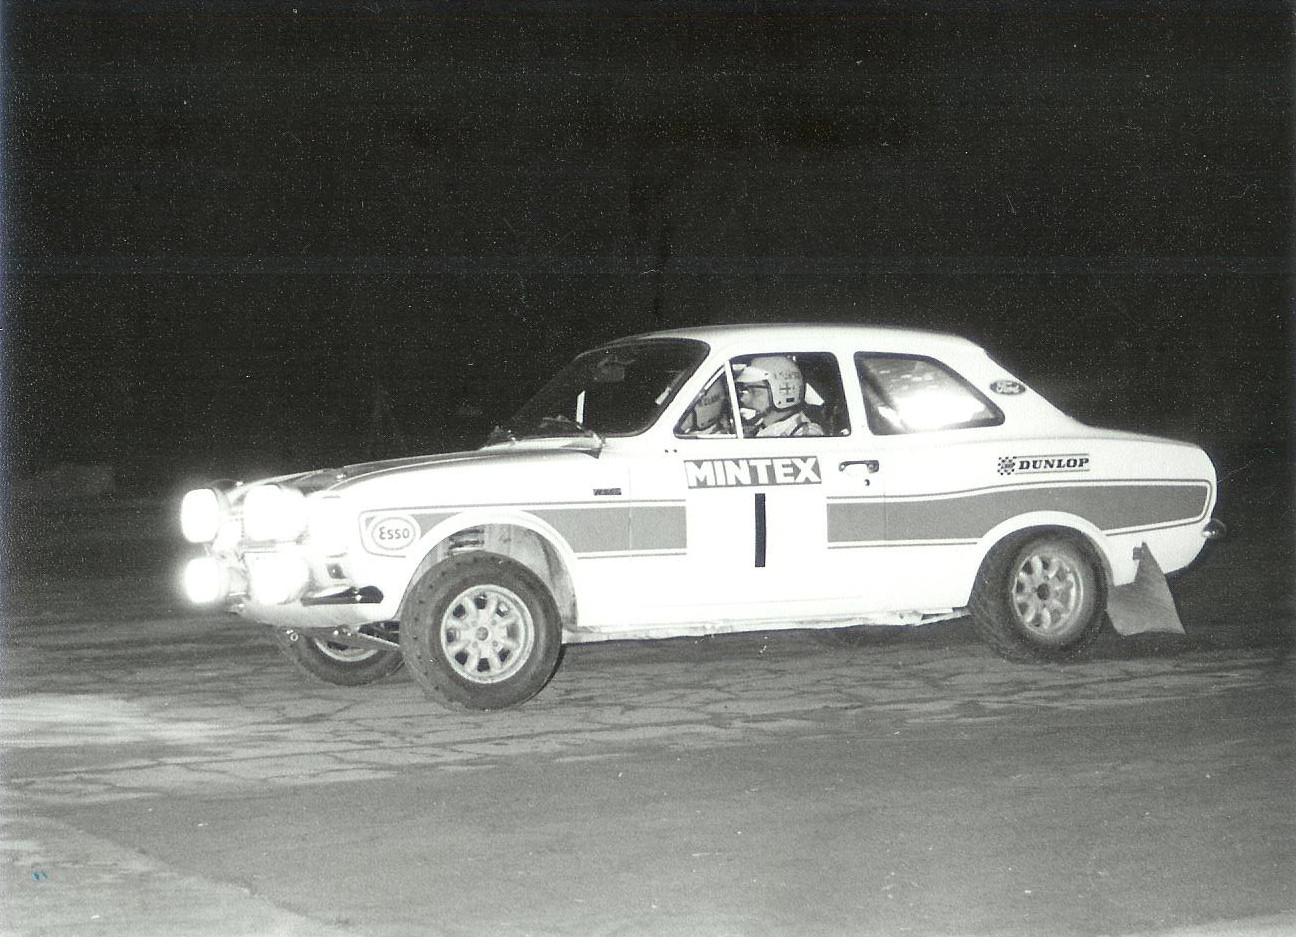 1974-Mintex-Rally-Car-1-Roger-Clark-and-Jim-Porter